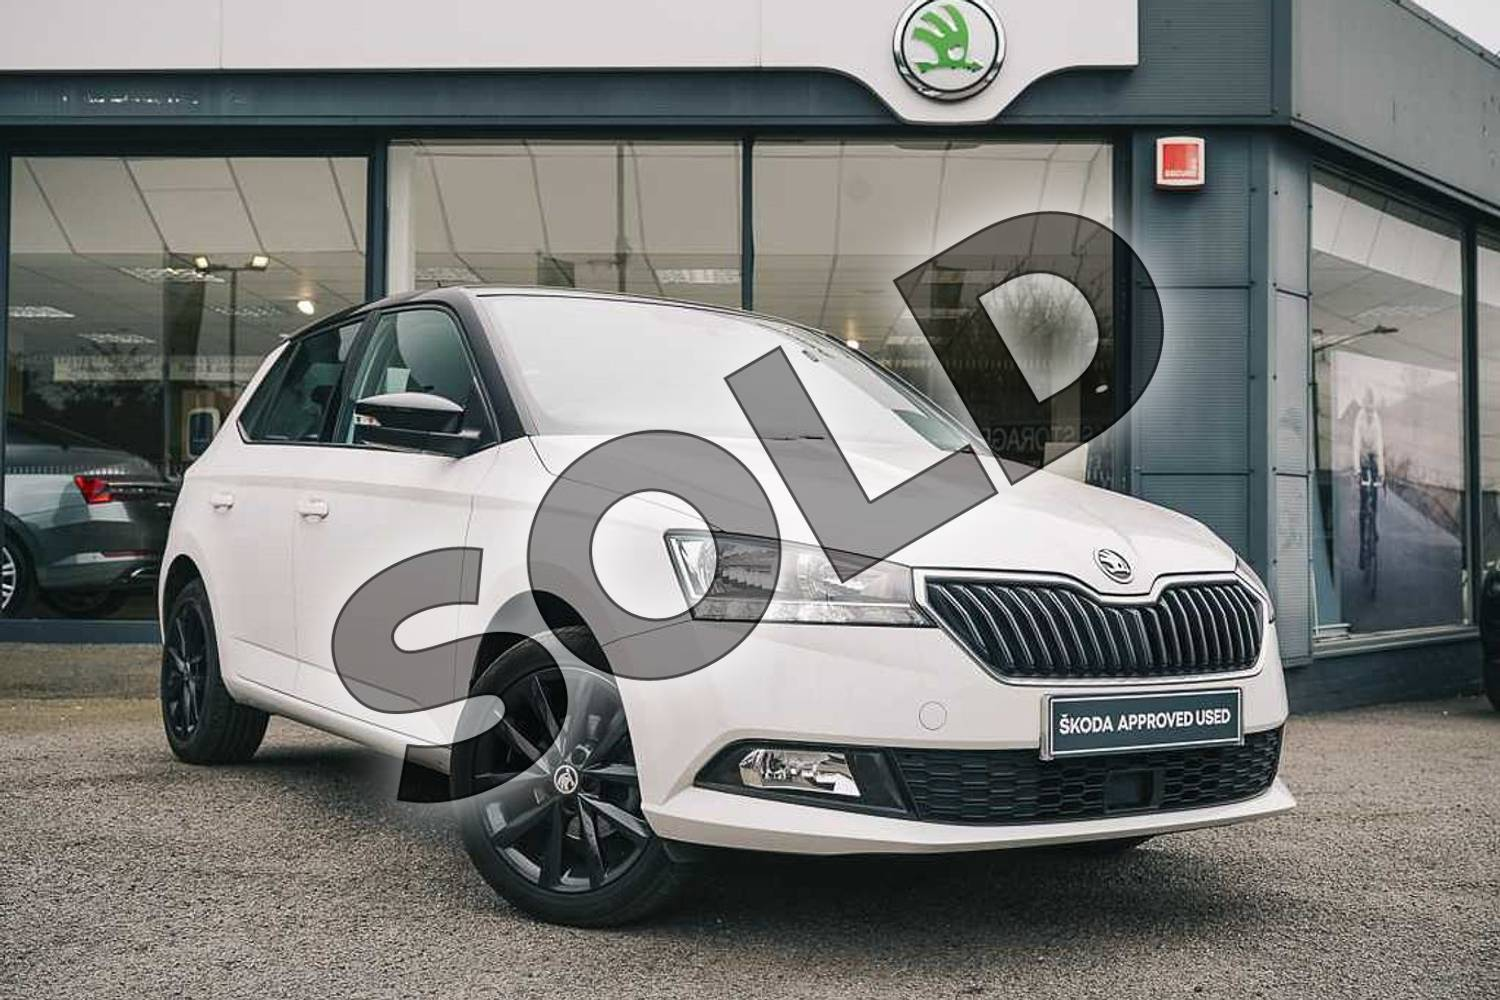 2019 Skoda Fabia Hatchback Special Editions Special Editions 1.0 TSI Colour Edition 5dr in Candy White at Listers ŠKODA Coventry